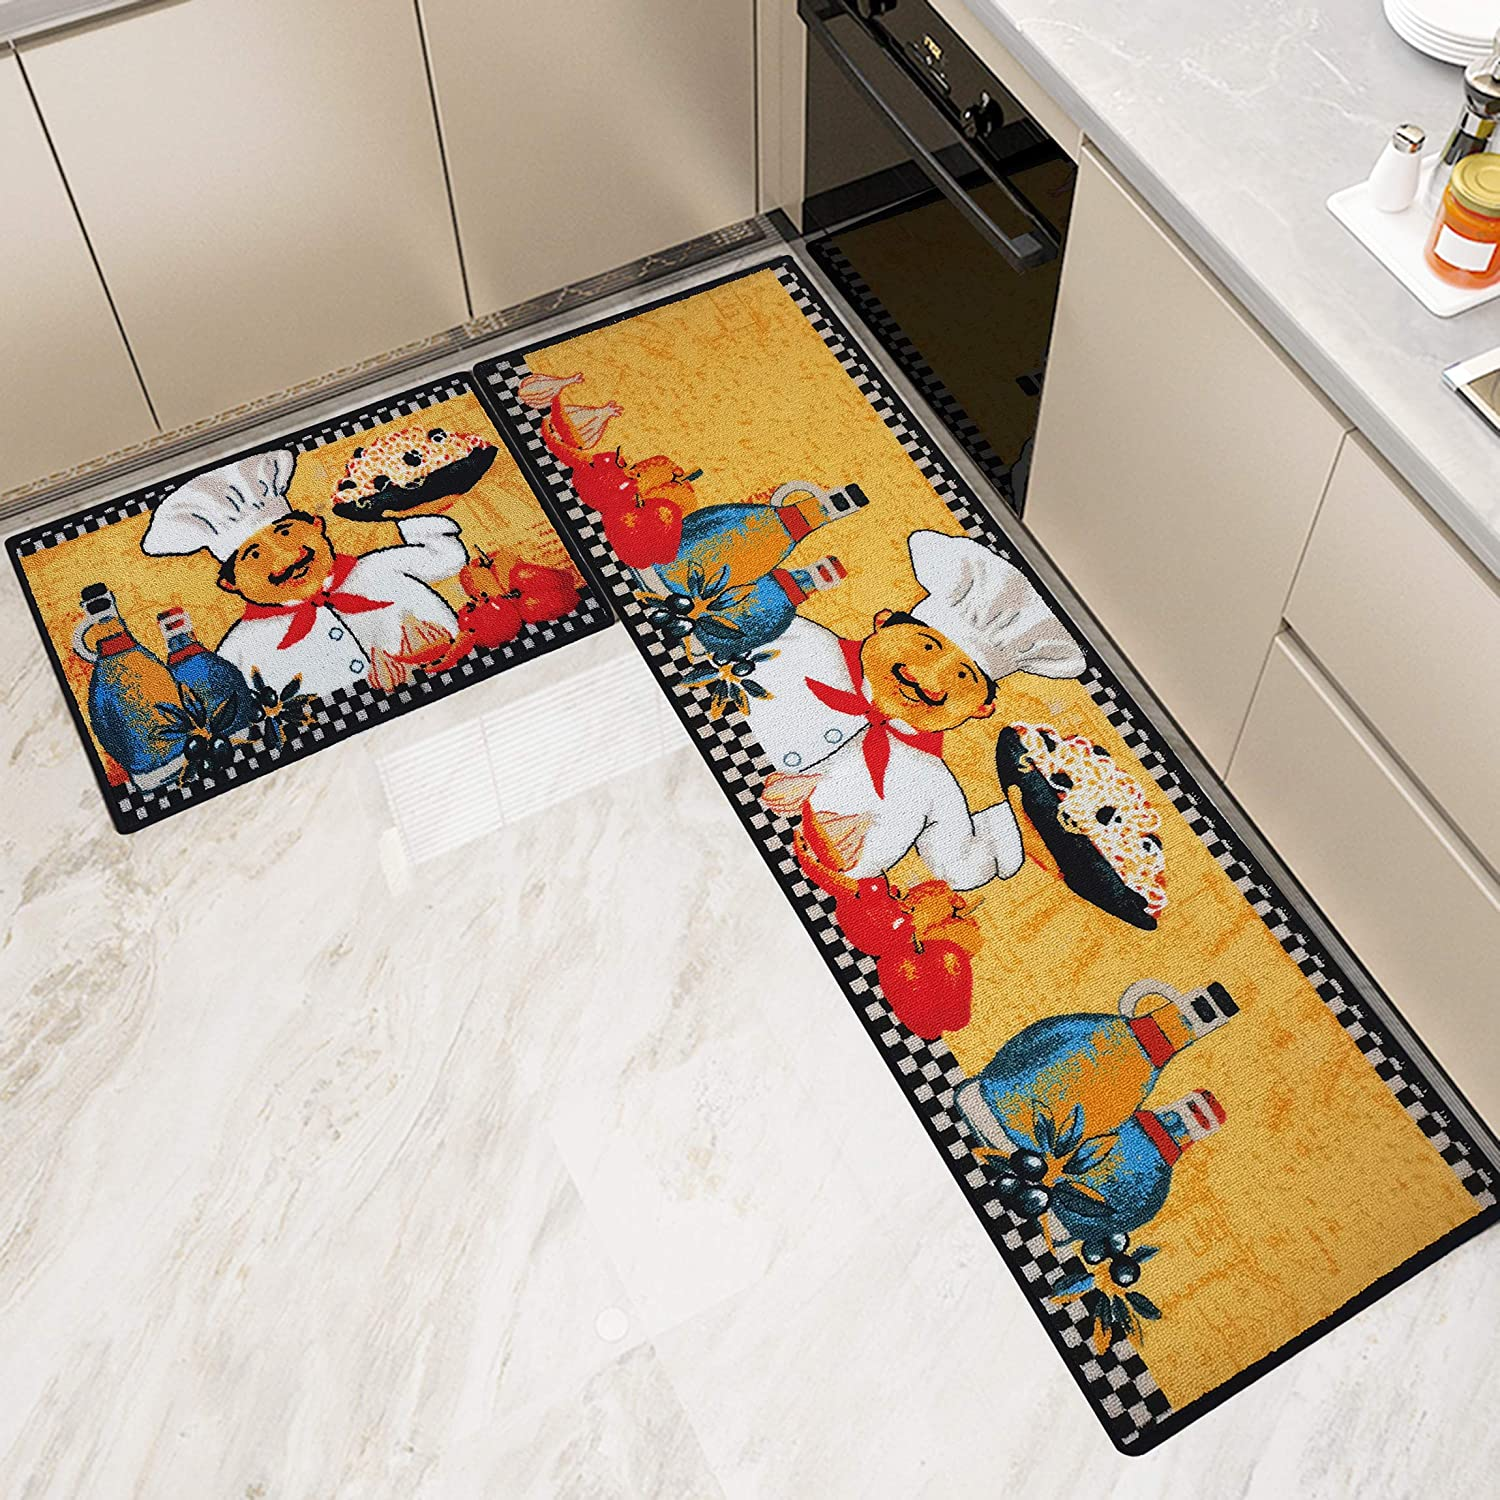 Kitchen Rugs and Mats Non Skid Washable Set 2 PCS, Water Absorb Microfiber Standing Kitchen Area Decor Mats and Rugs Rubber Backing Soft Carpet Doormat Runner for Home Floor, Noodle Chef